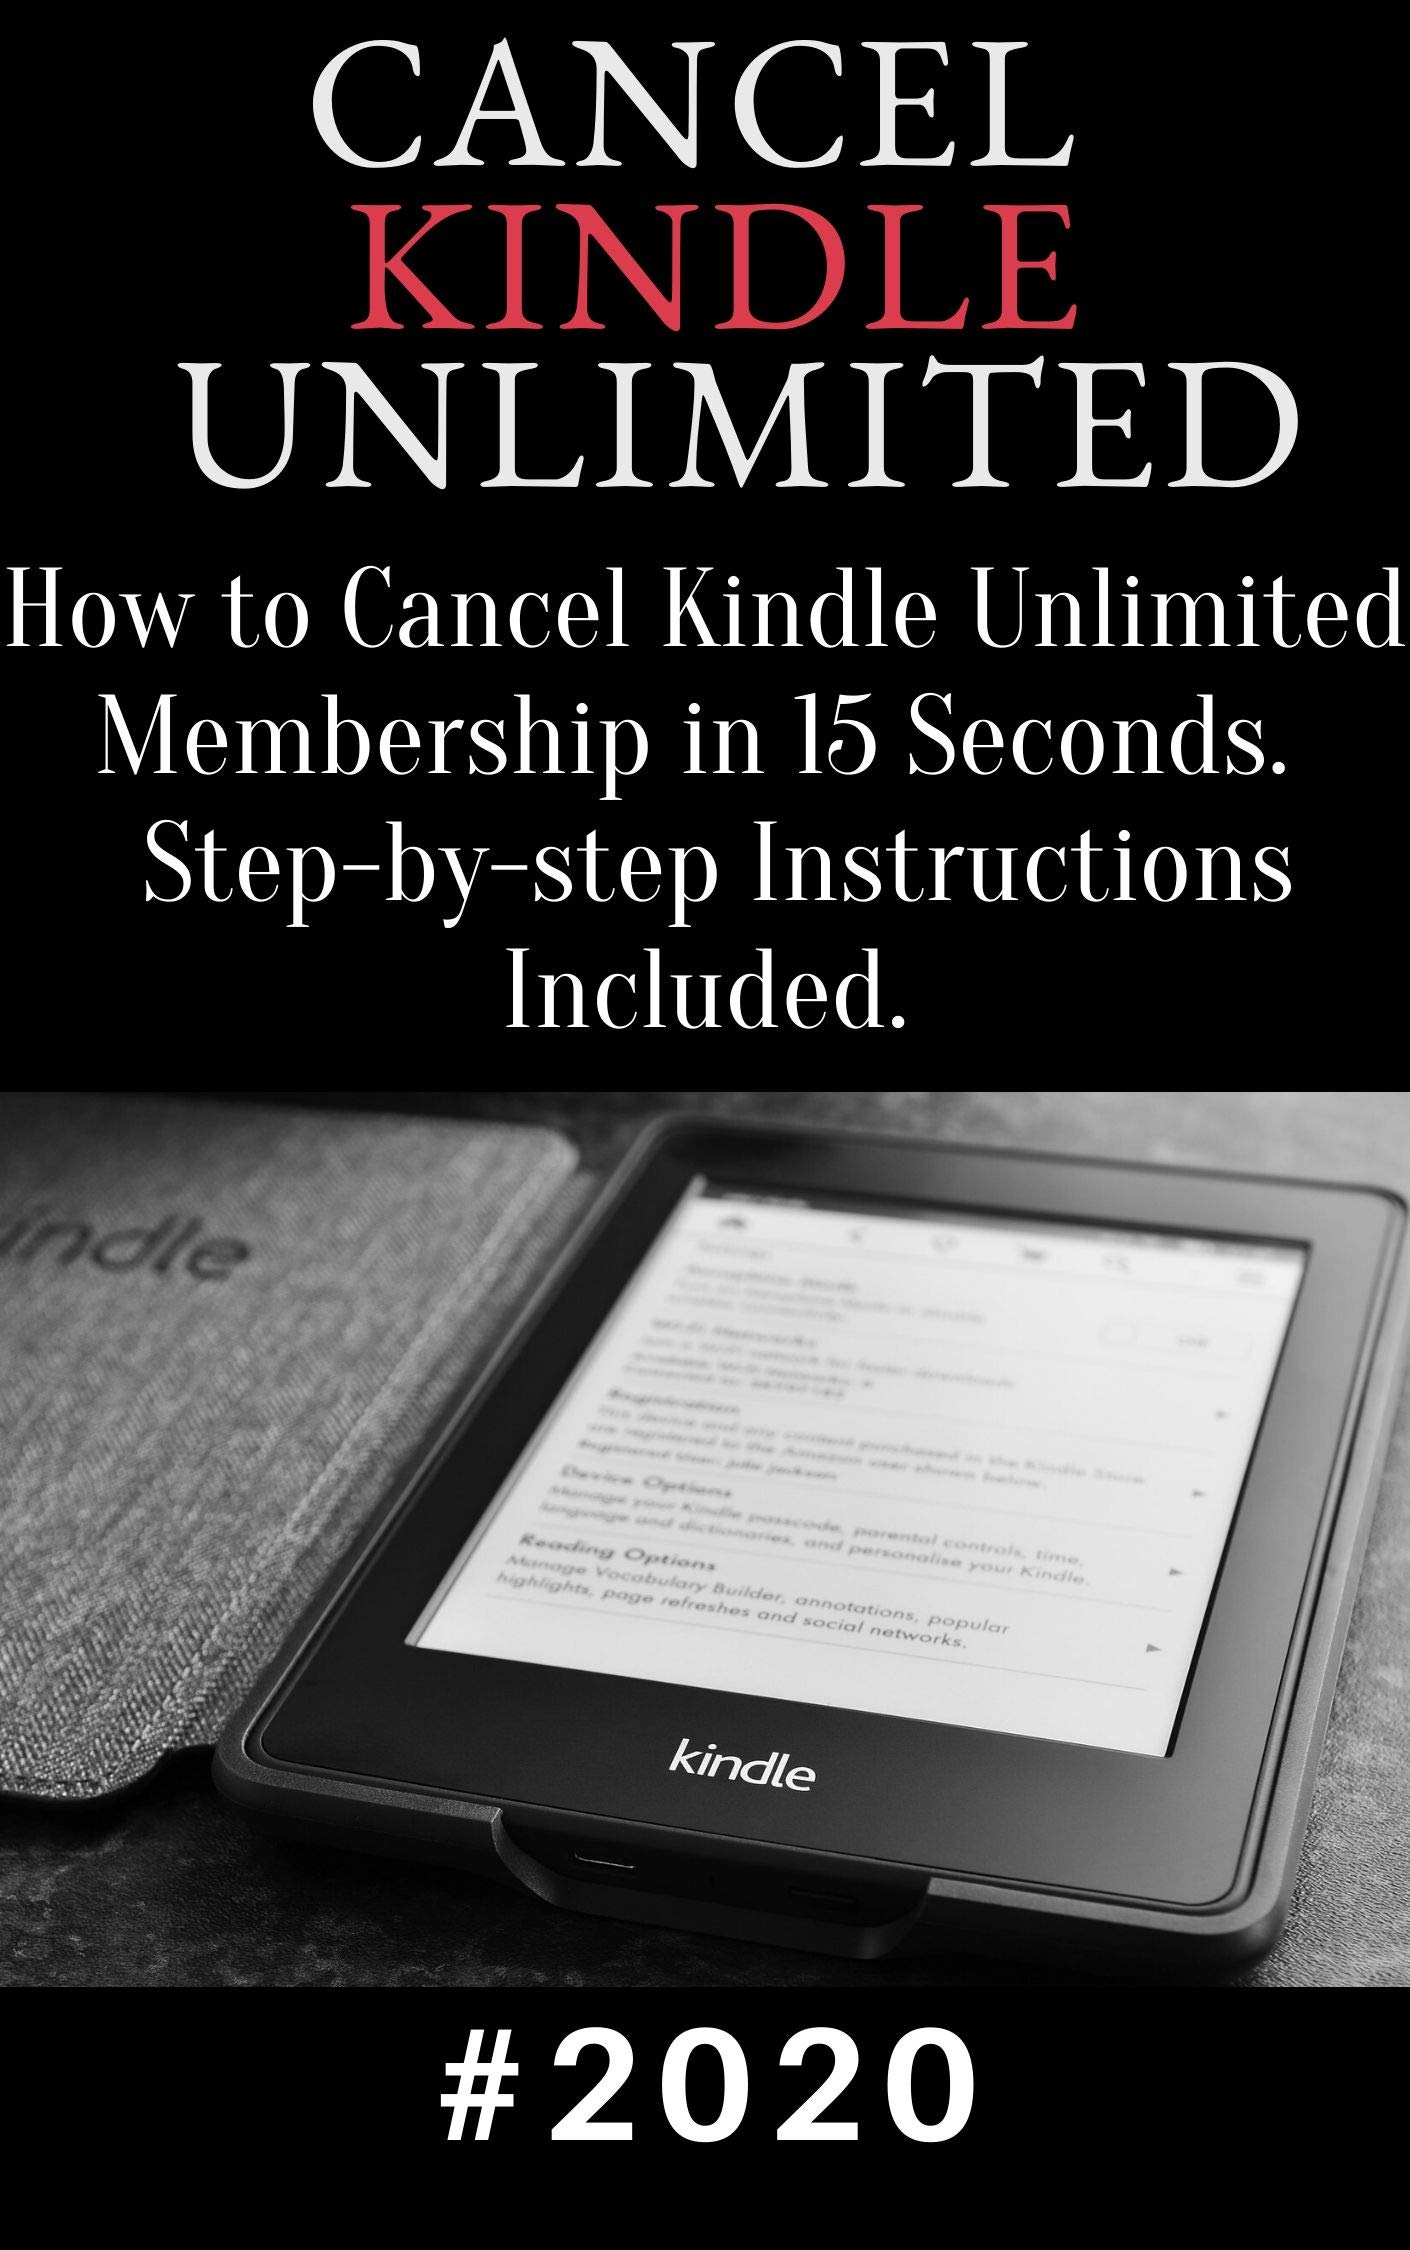 Cancel Kindle Unlimited: 2020 How to Cancel Kindle Unlimited Membership in 15 Seconds. Step-by-step Instructions Included